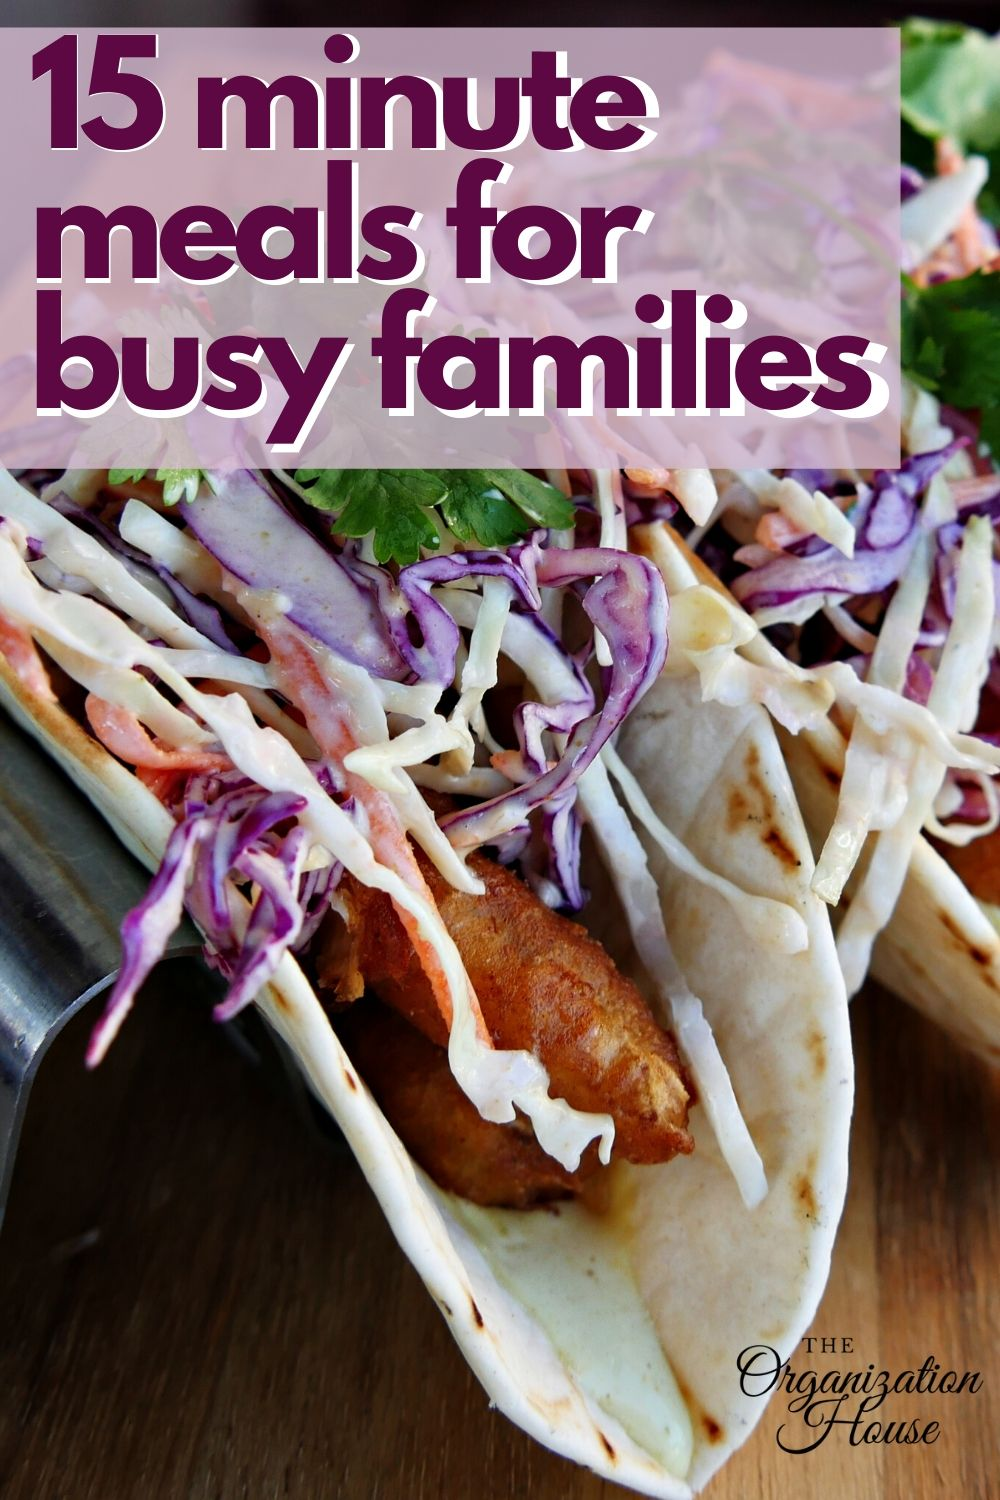 15 Minute Meals for Families for Busy Nights or When You Have to Self-Quarantine - TheOrganizationHouse.com